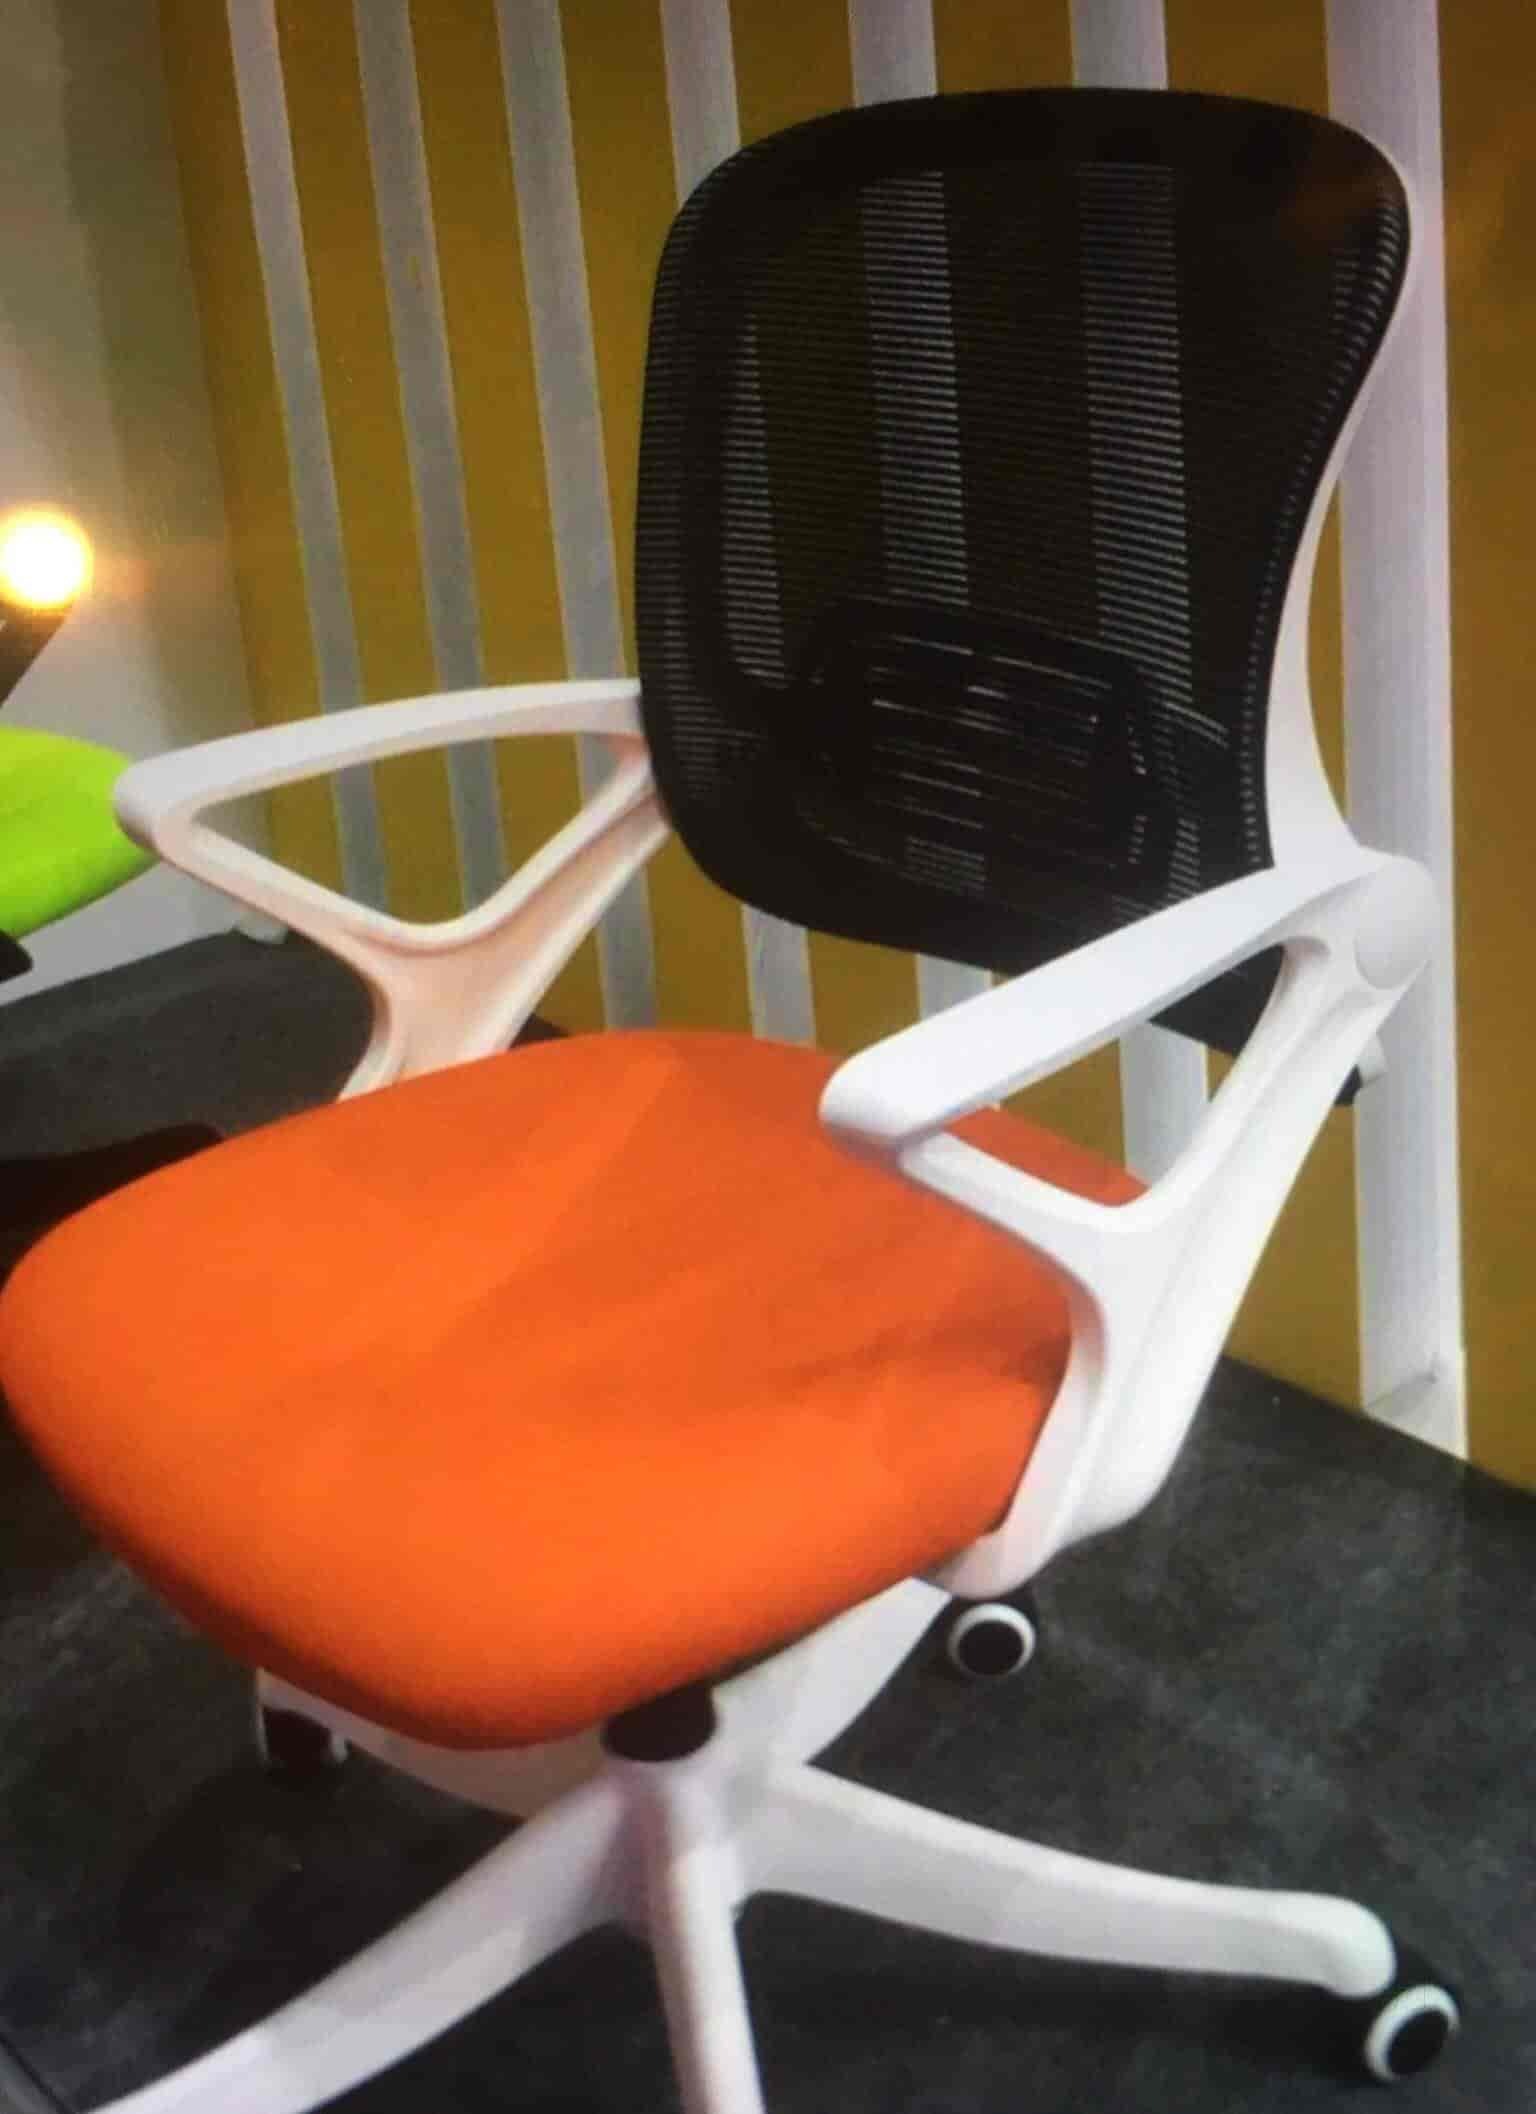 Top 100 Office Chair Manufacturers In Kolkata ऑफ स च यर मन फक चरर स क लक त Best Computer Chair Manufacturers Justdial